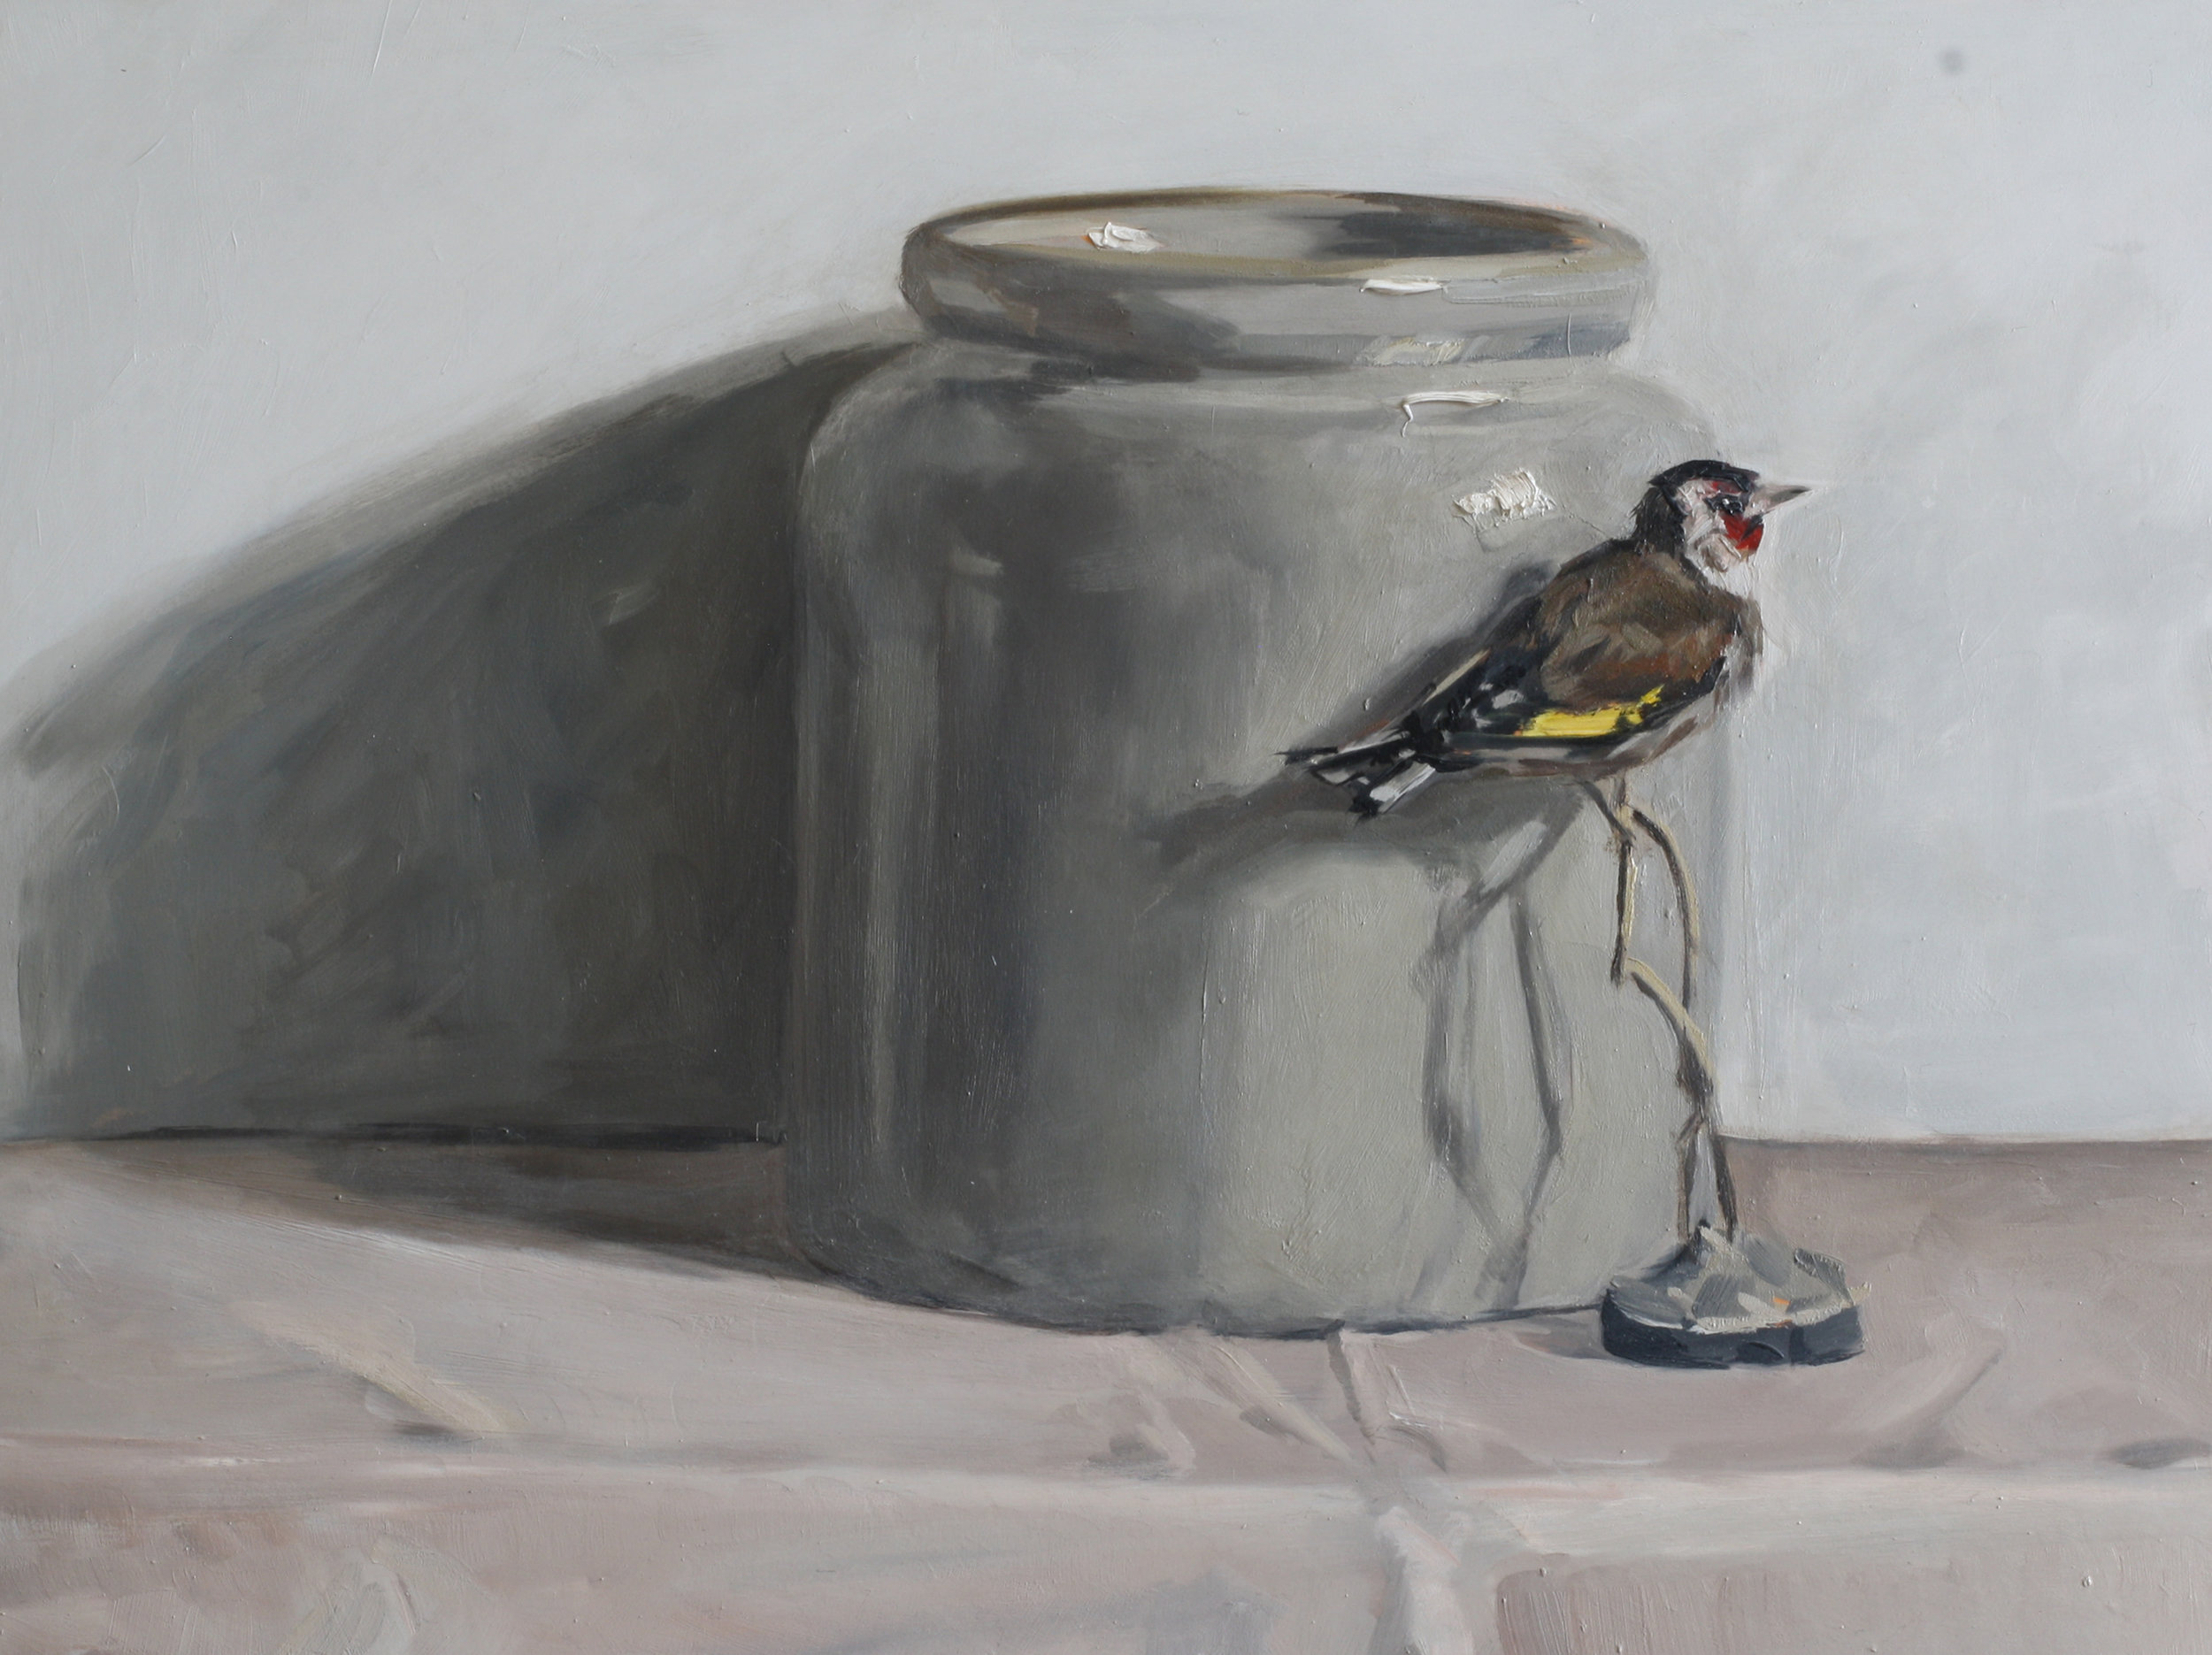 Confit Pot and Goldfinch  oil on gesso panel  30 x 40cm painting size  SOLD